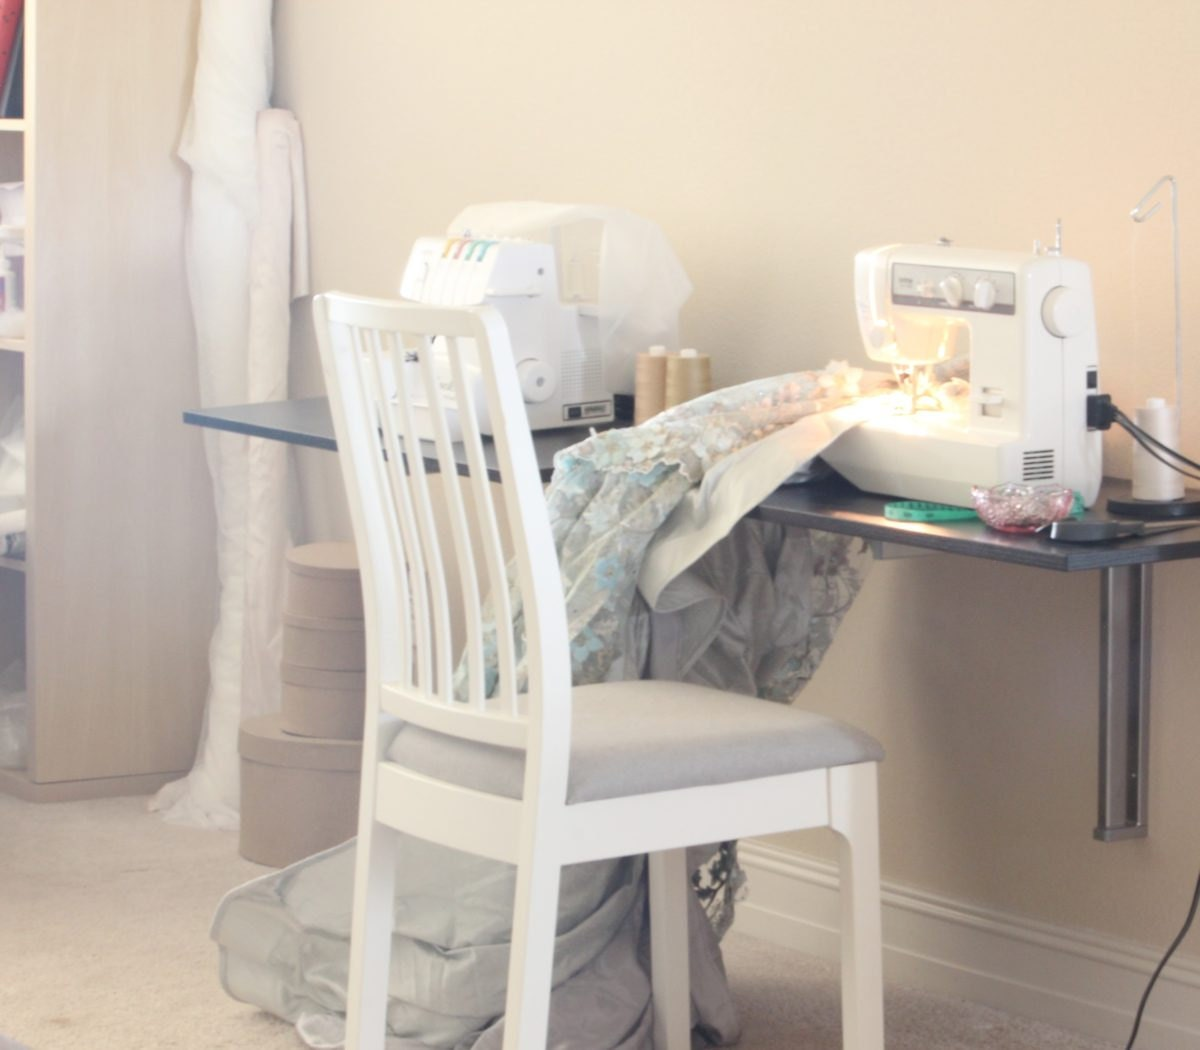 Smitha's workstation with a dusty blue bridal skirt in progress